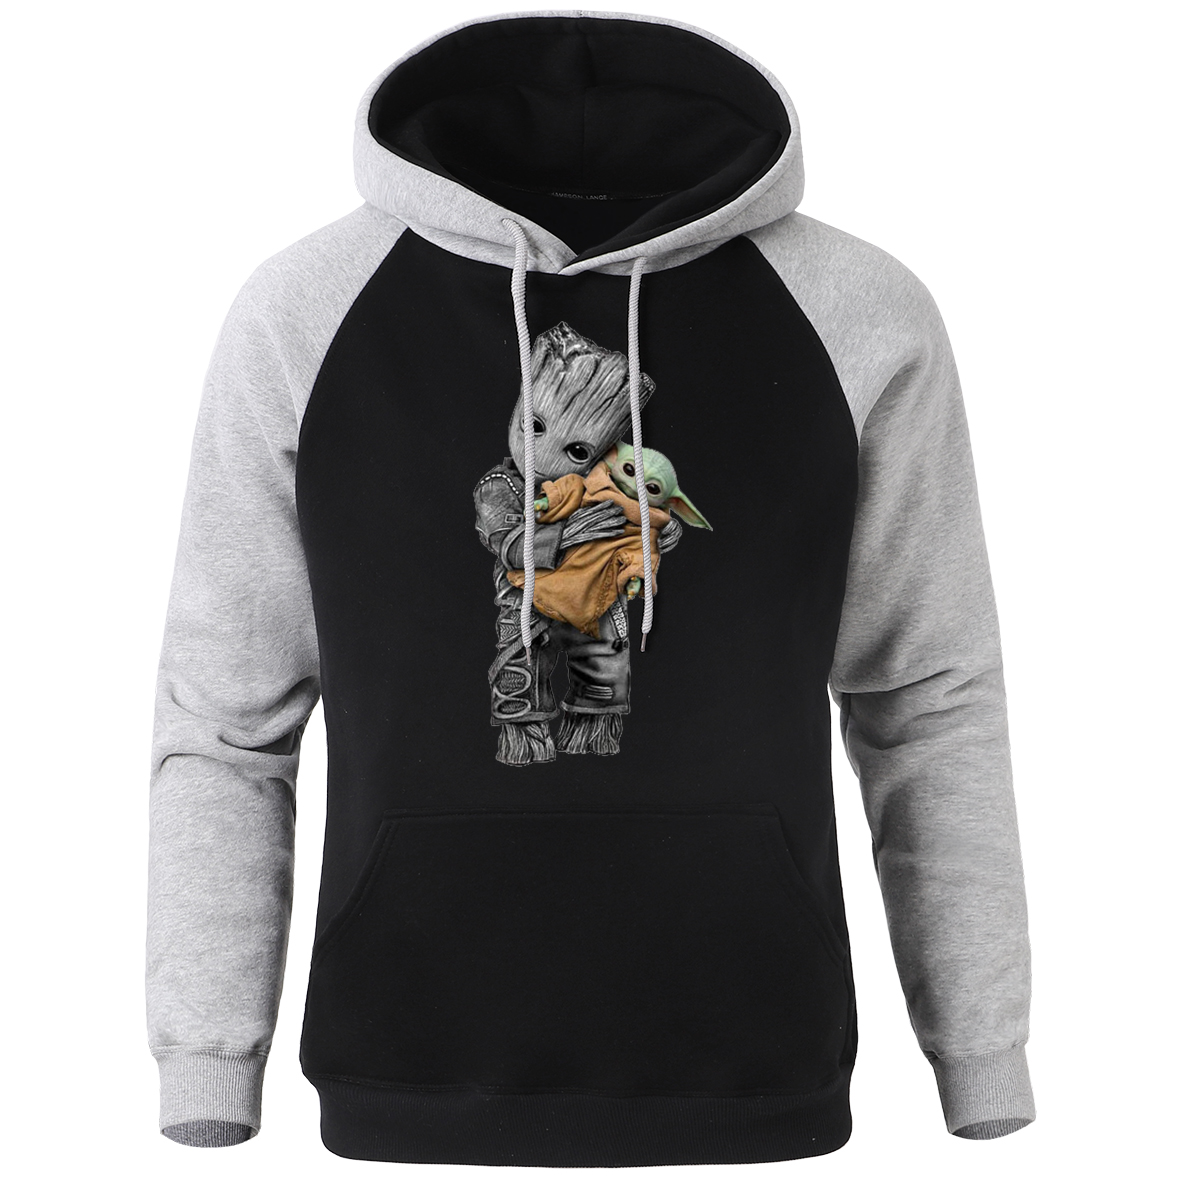 Groot And Yoda Funny Print Men Raglan Hooded Sweatshirt Spring Winter 2020 New Hip Hop Mandalorian Pullover Casual Fleece Hoodie